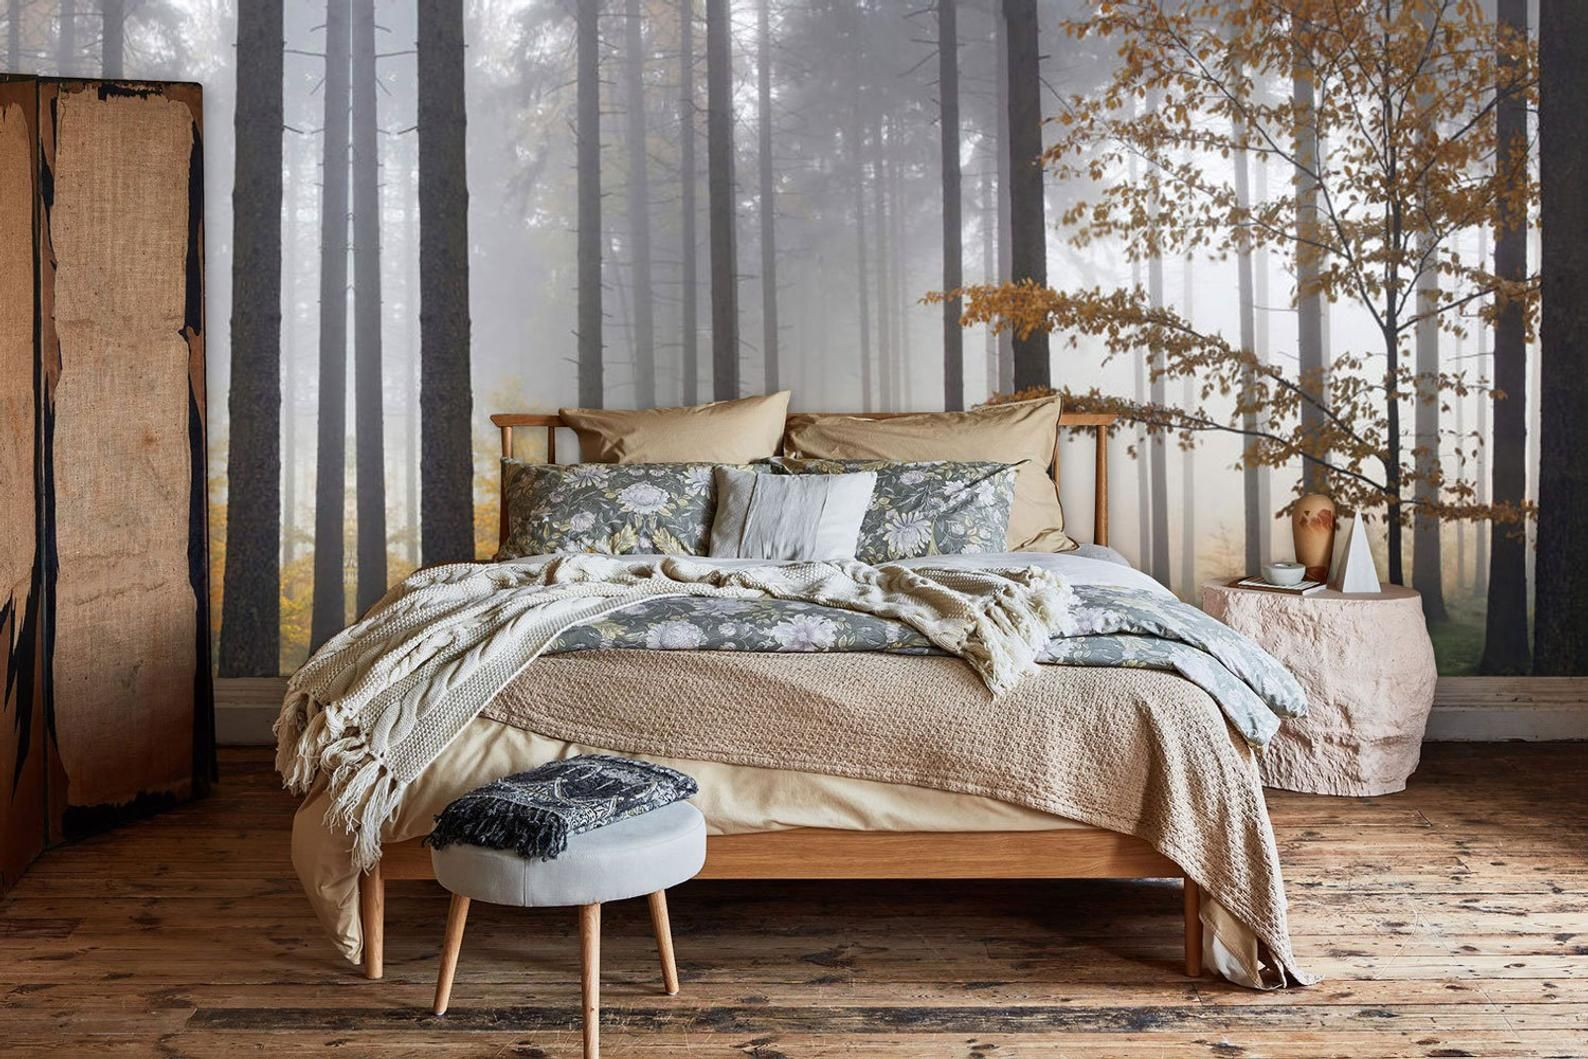 Autumn Misty Morning in the Forest Wall mural, Wallpaper